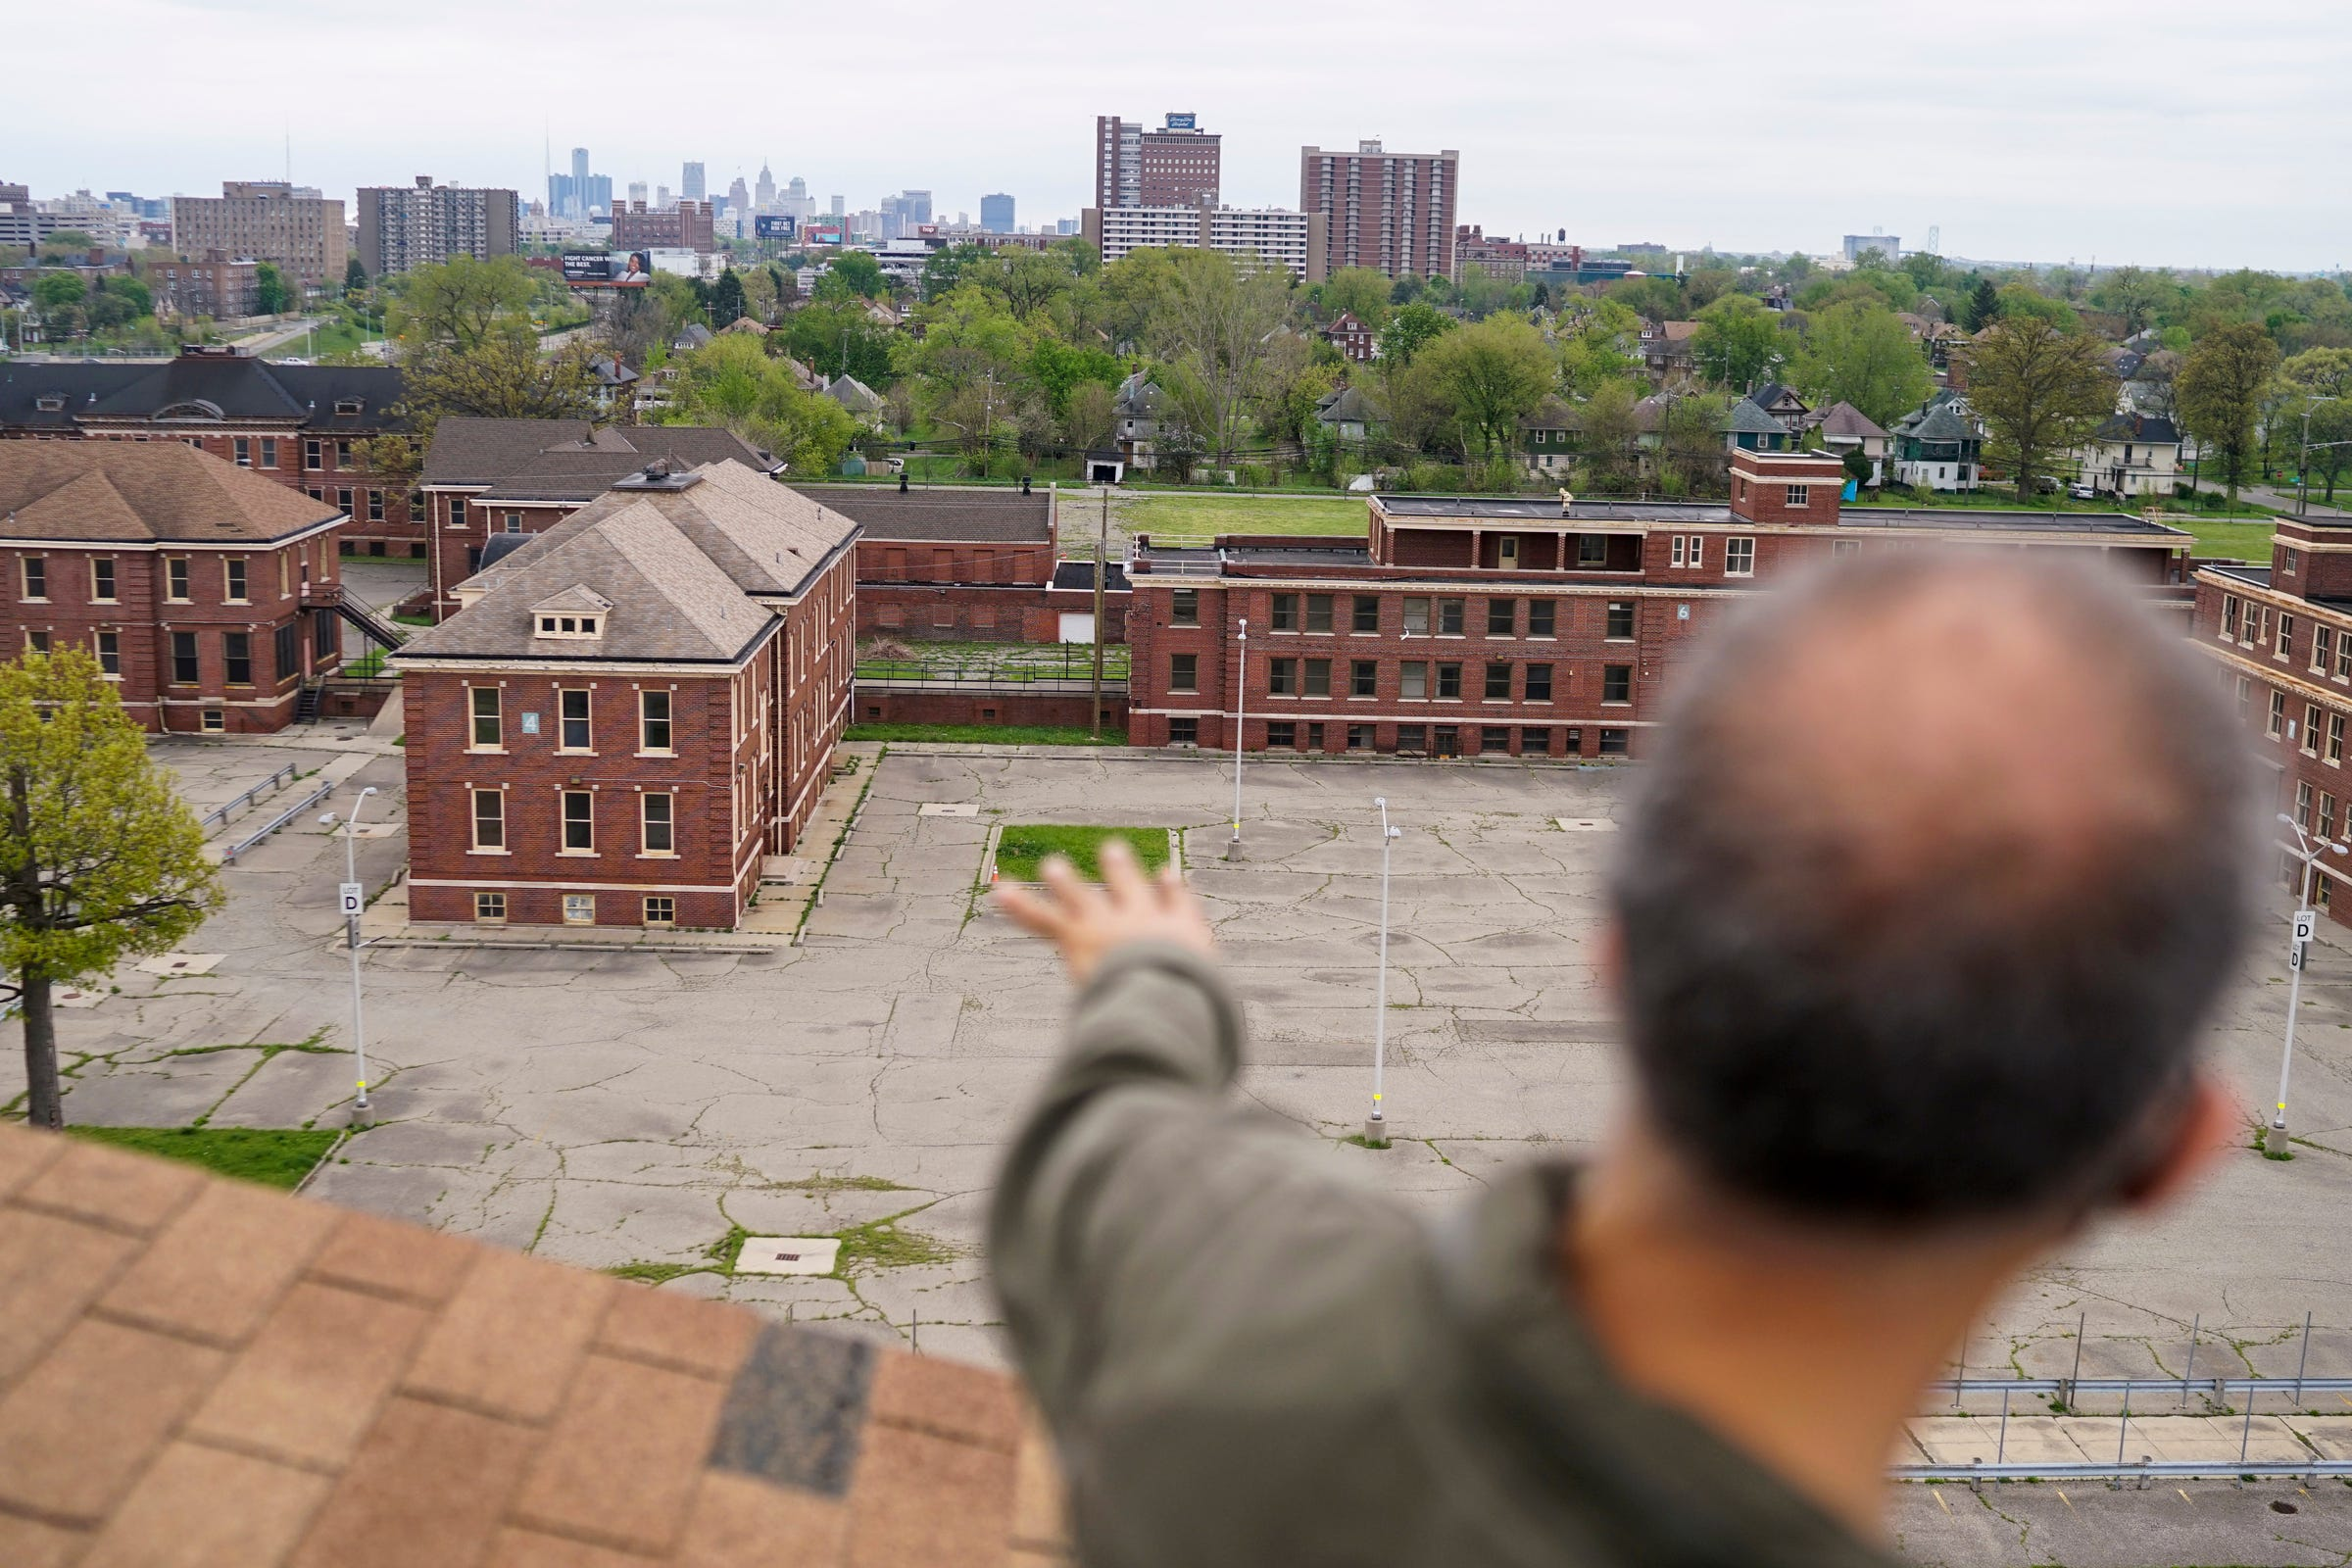 New York developer facing tight deadlines, neighborhood criticism in Detroit